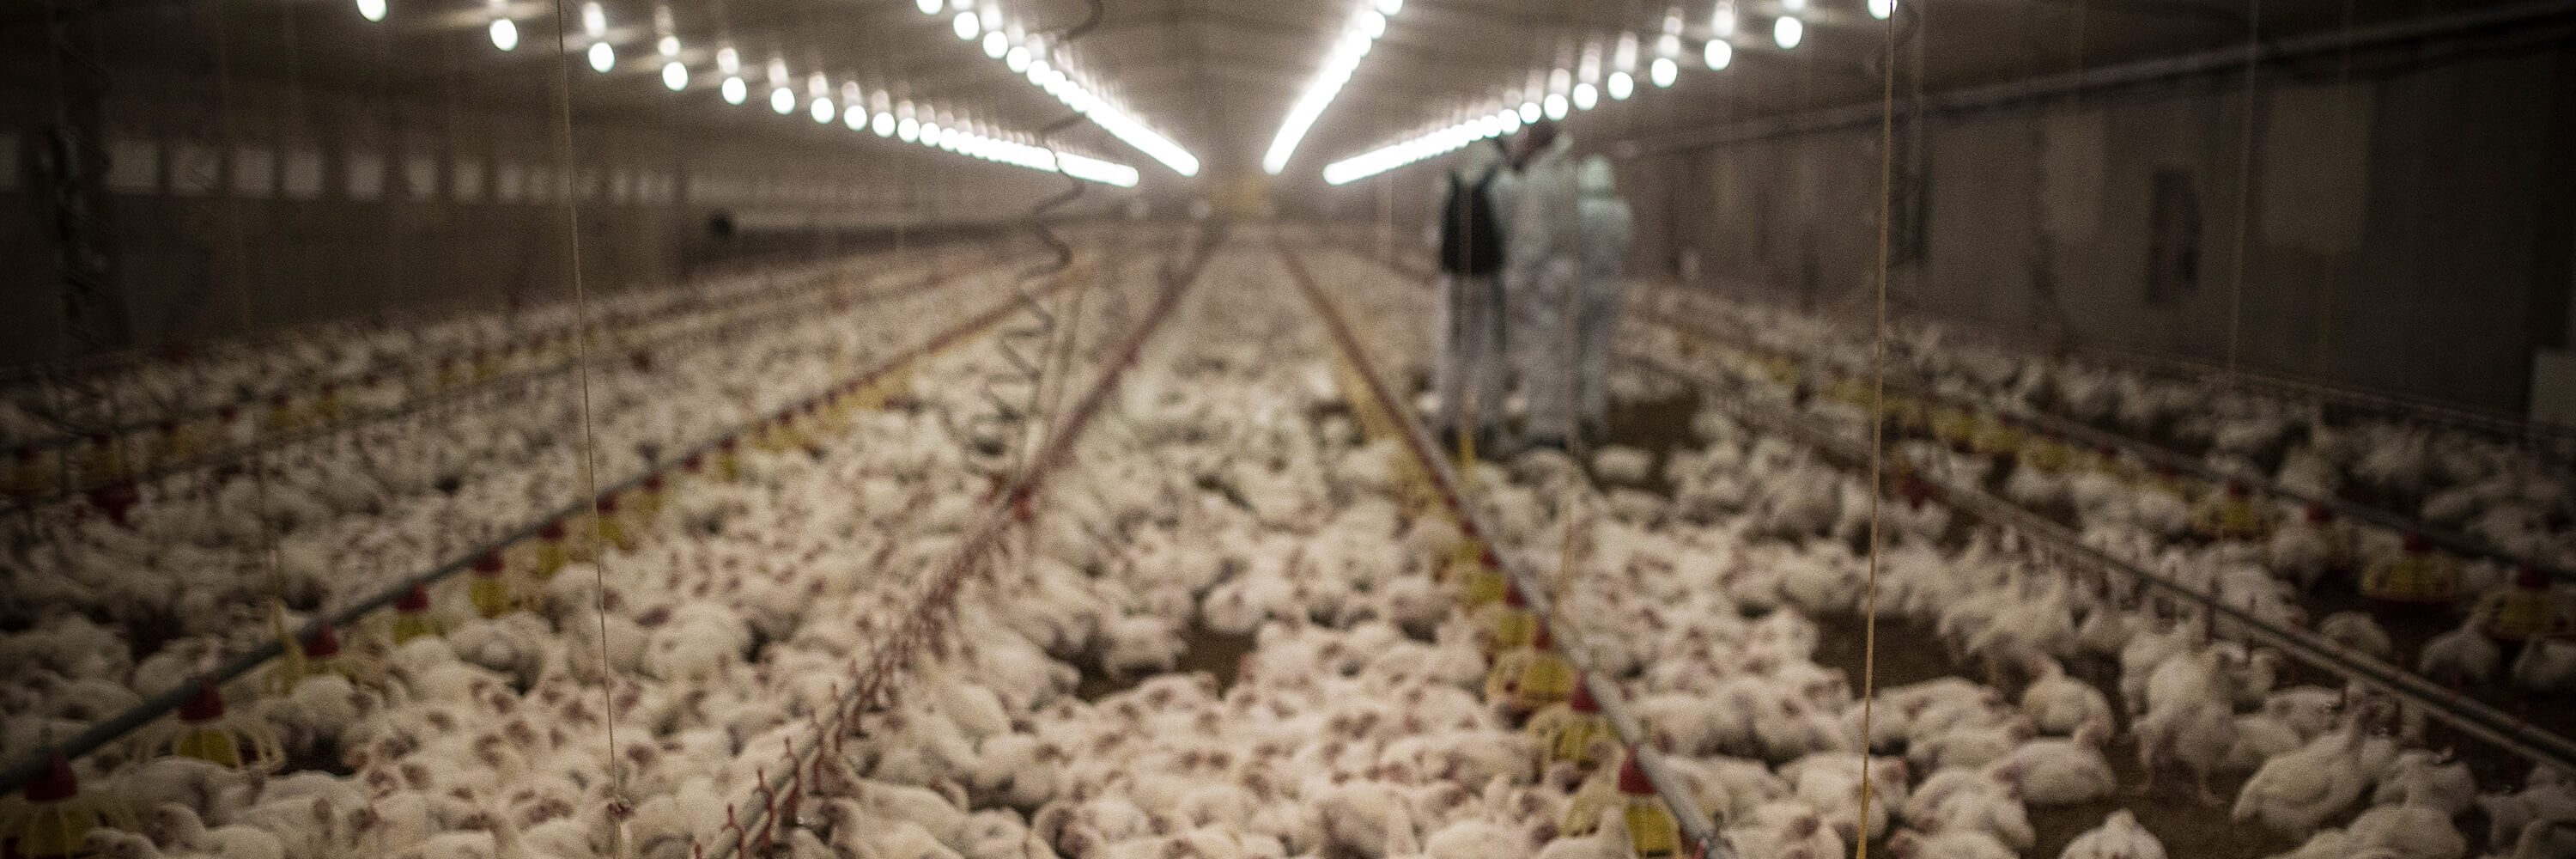 Chickens Suffer on Spanish Factory Farm